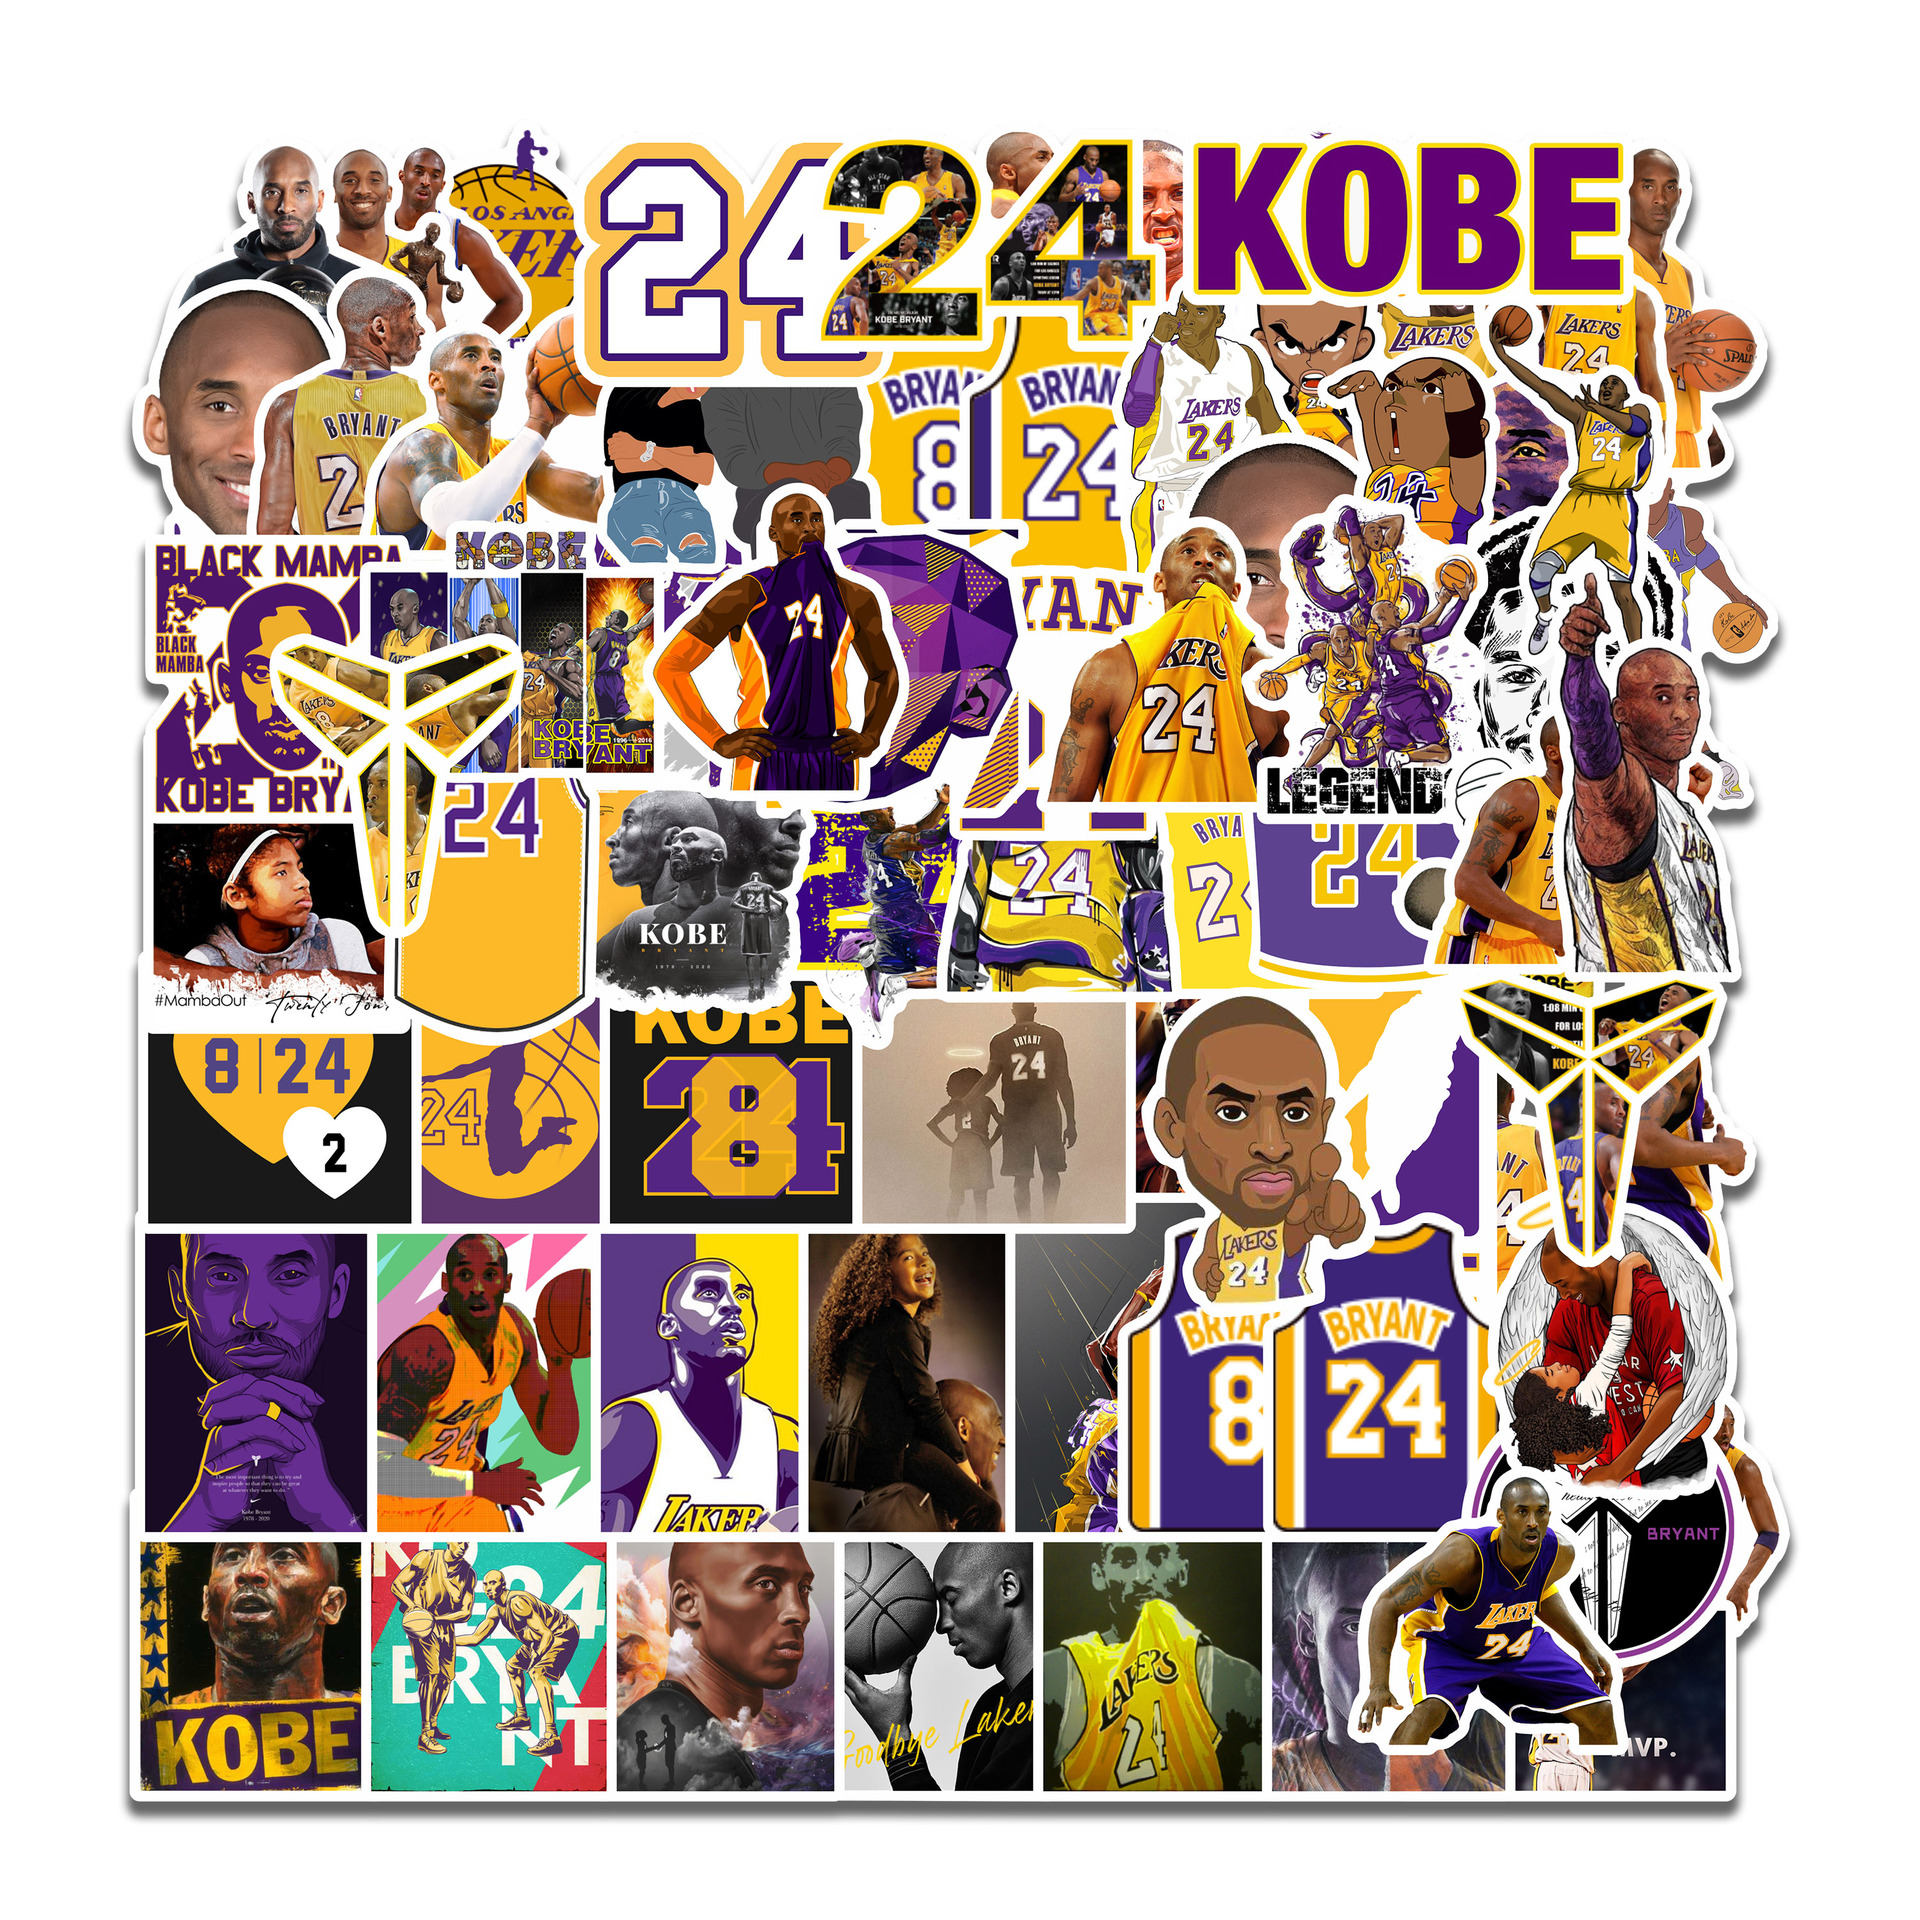 50/75 Pcs Basketball Stickers Kobe Bryant Sticker Waterproof Kids Toy Stickers For Luggage Laptop Phone Skateboard Decal